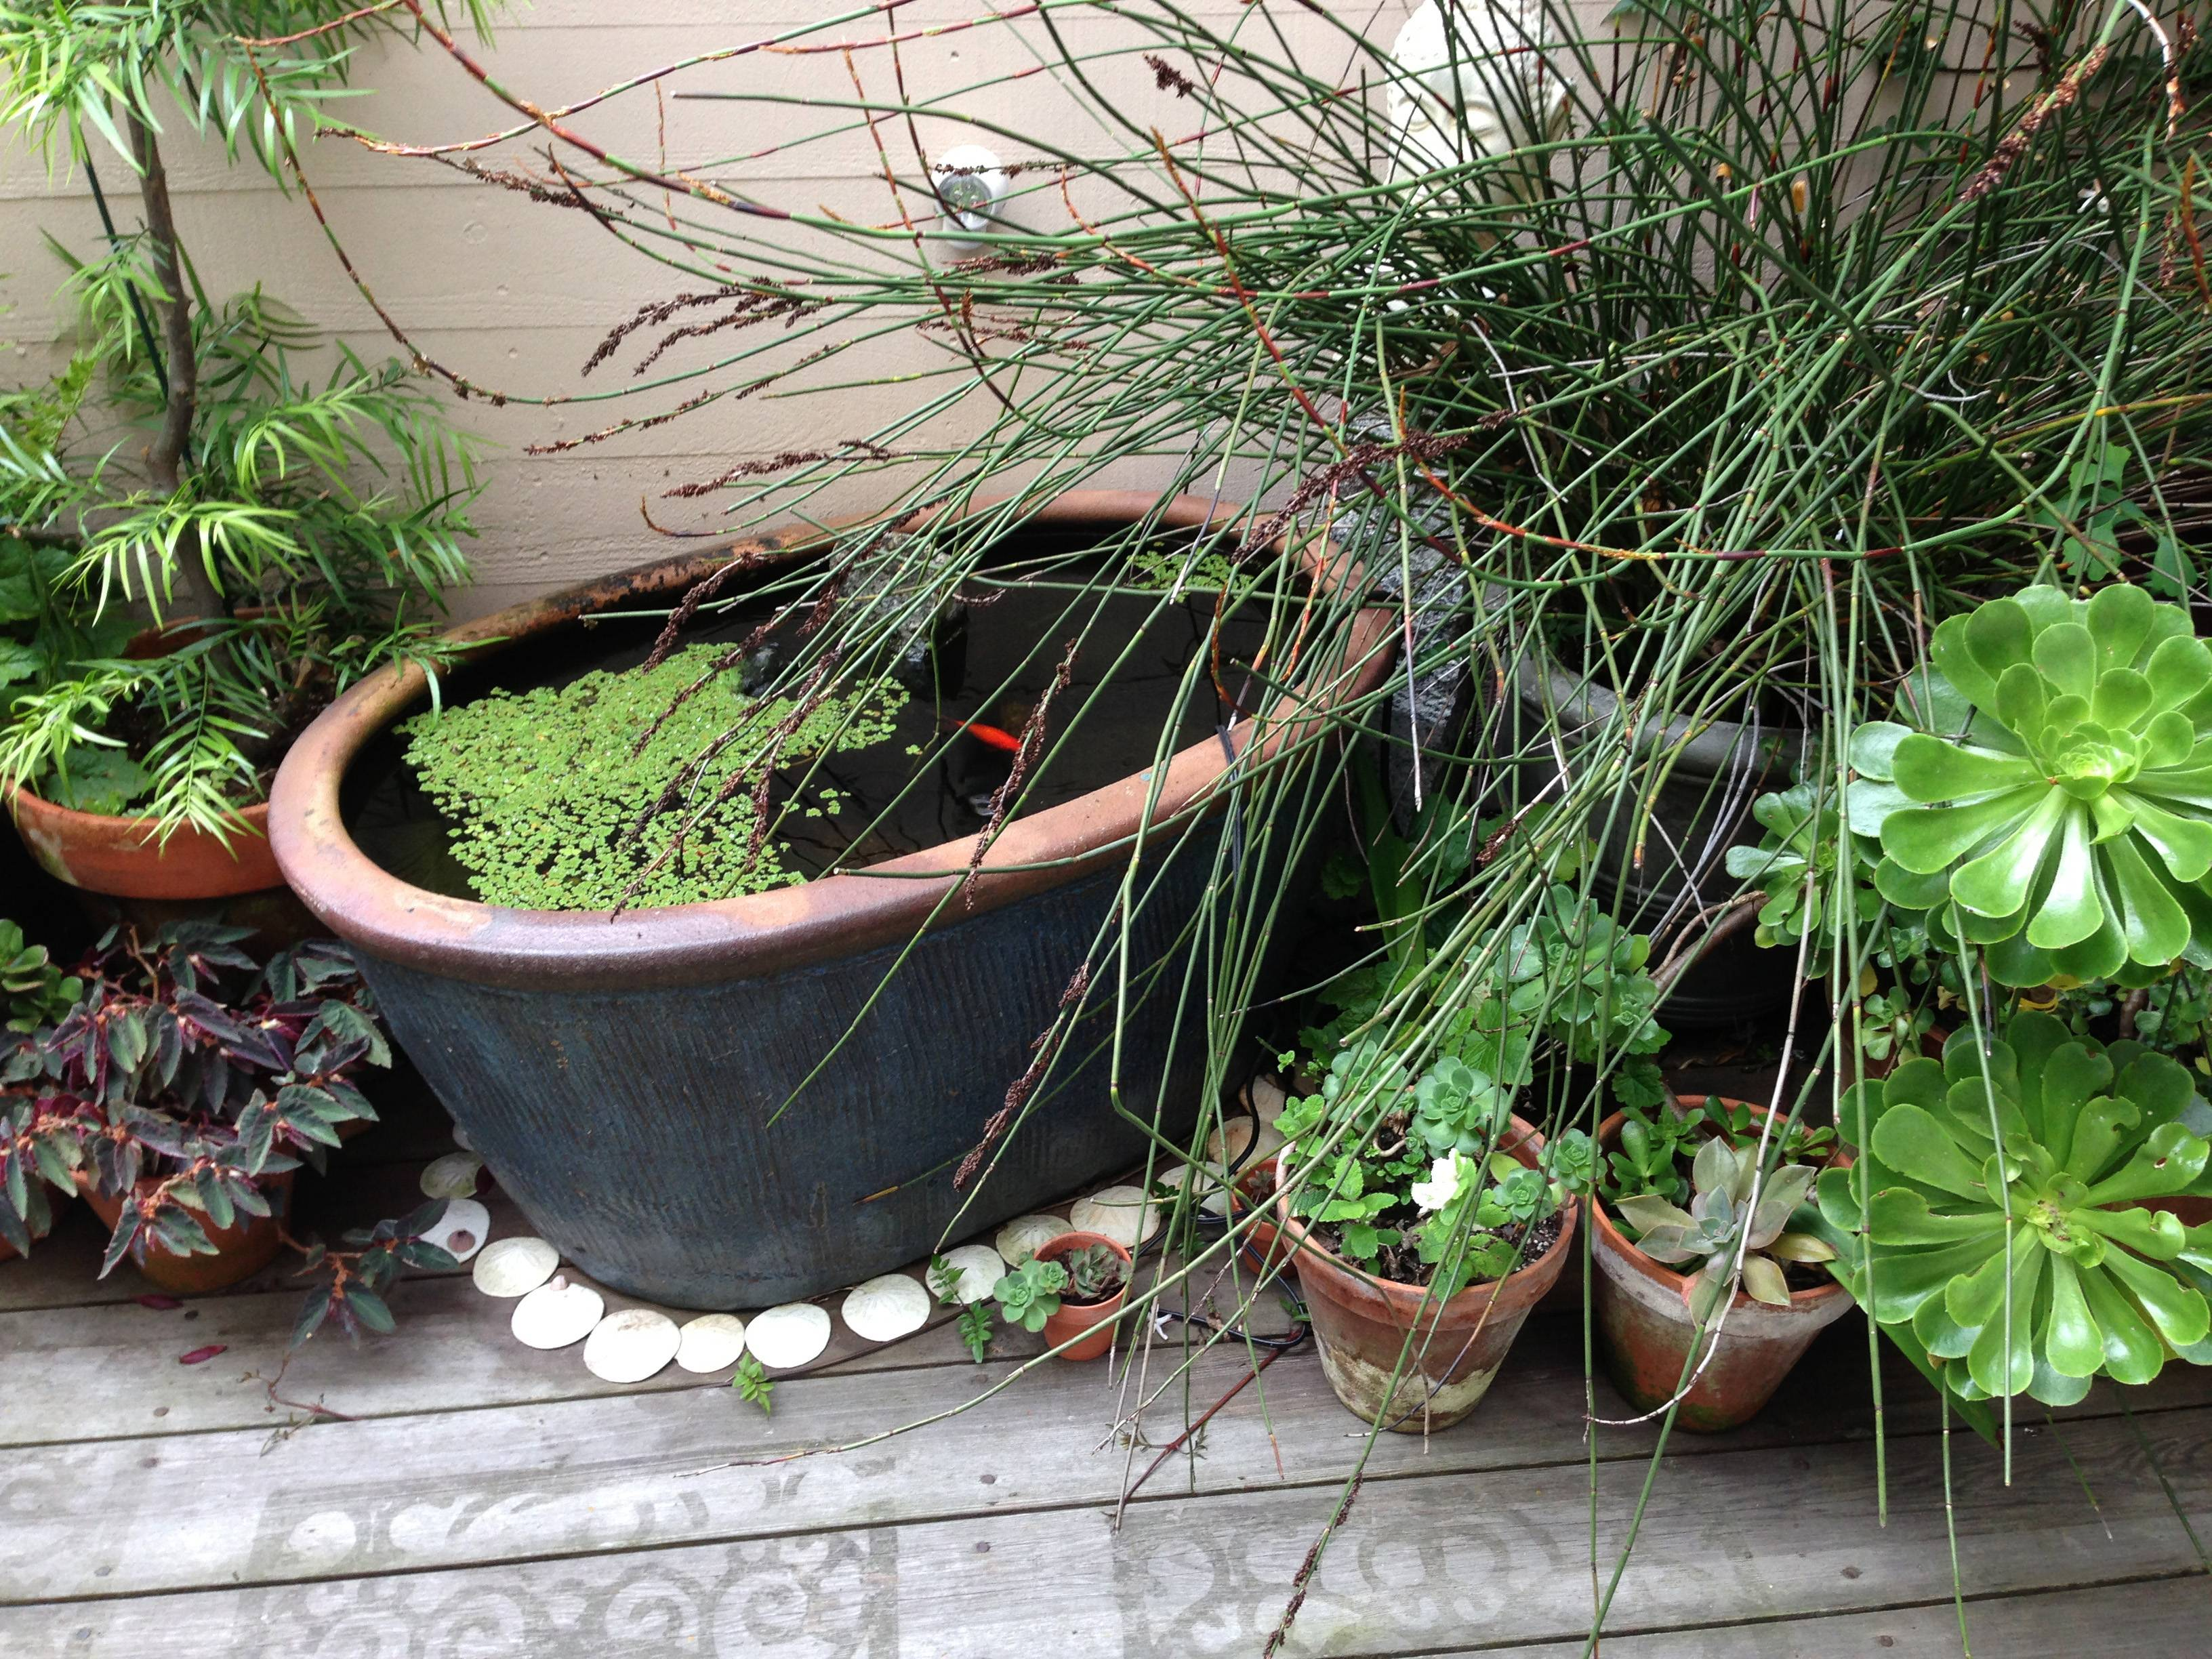 A planter can be used to put together a simple yet relaxing container pond for your porch or patio.